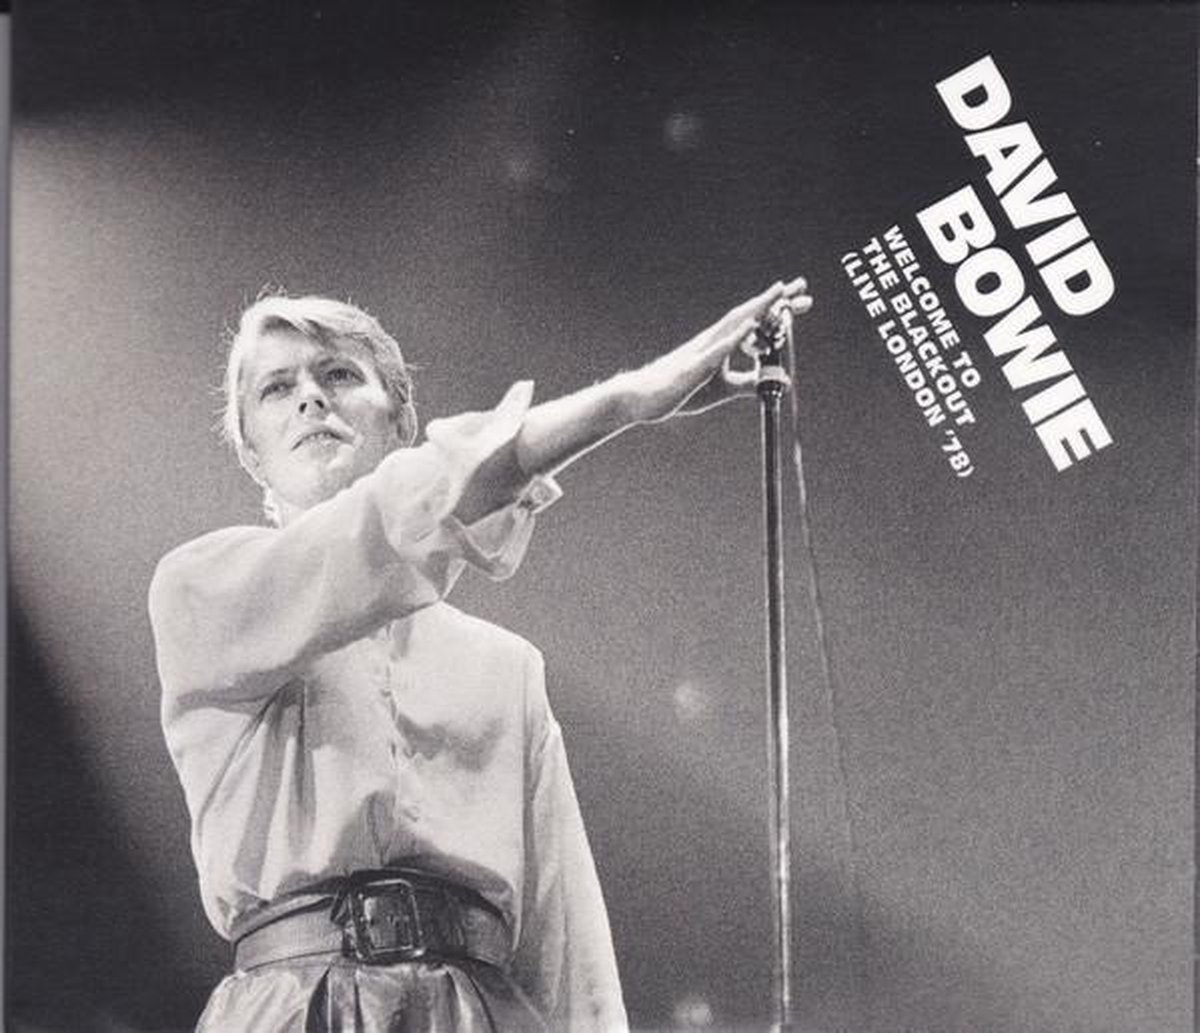 Welcome To The Blackout - David Bowie